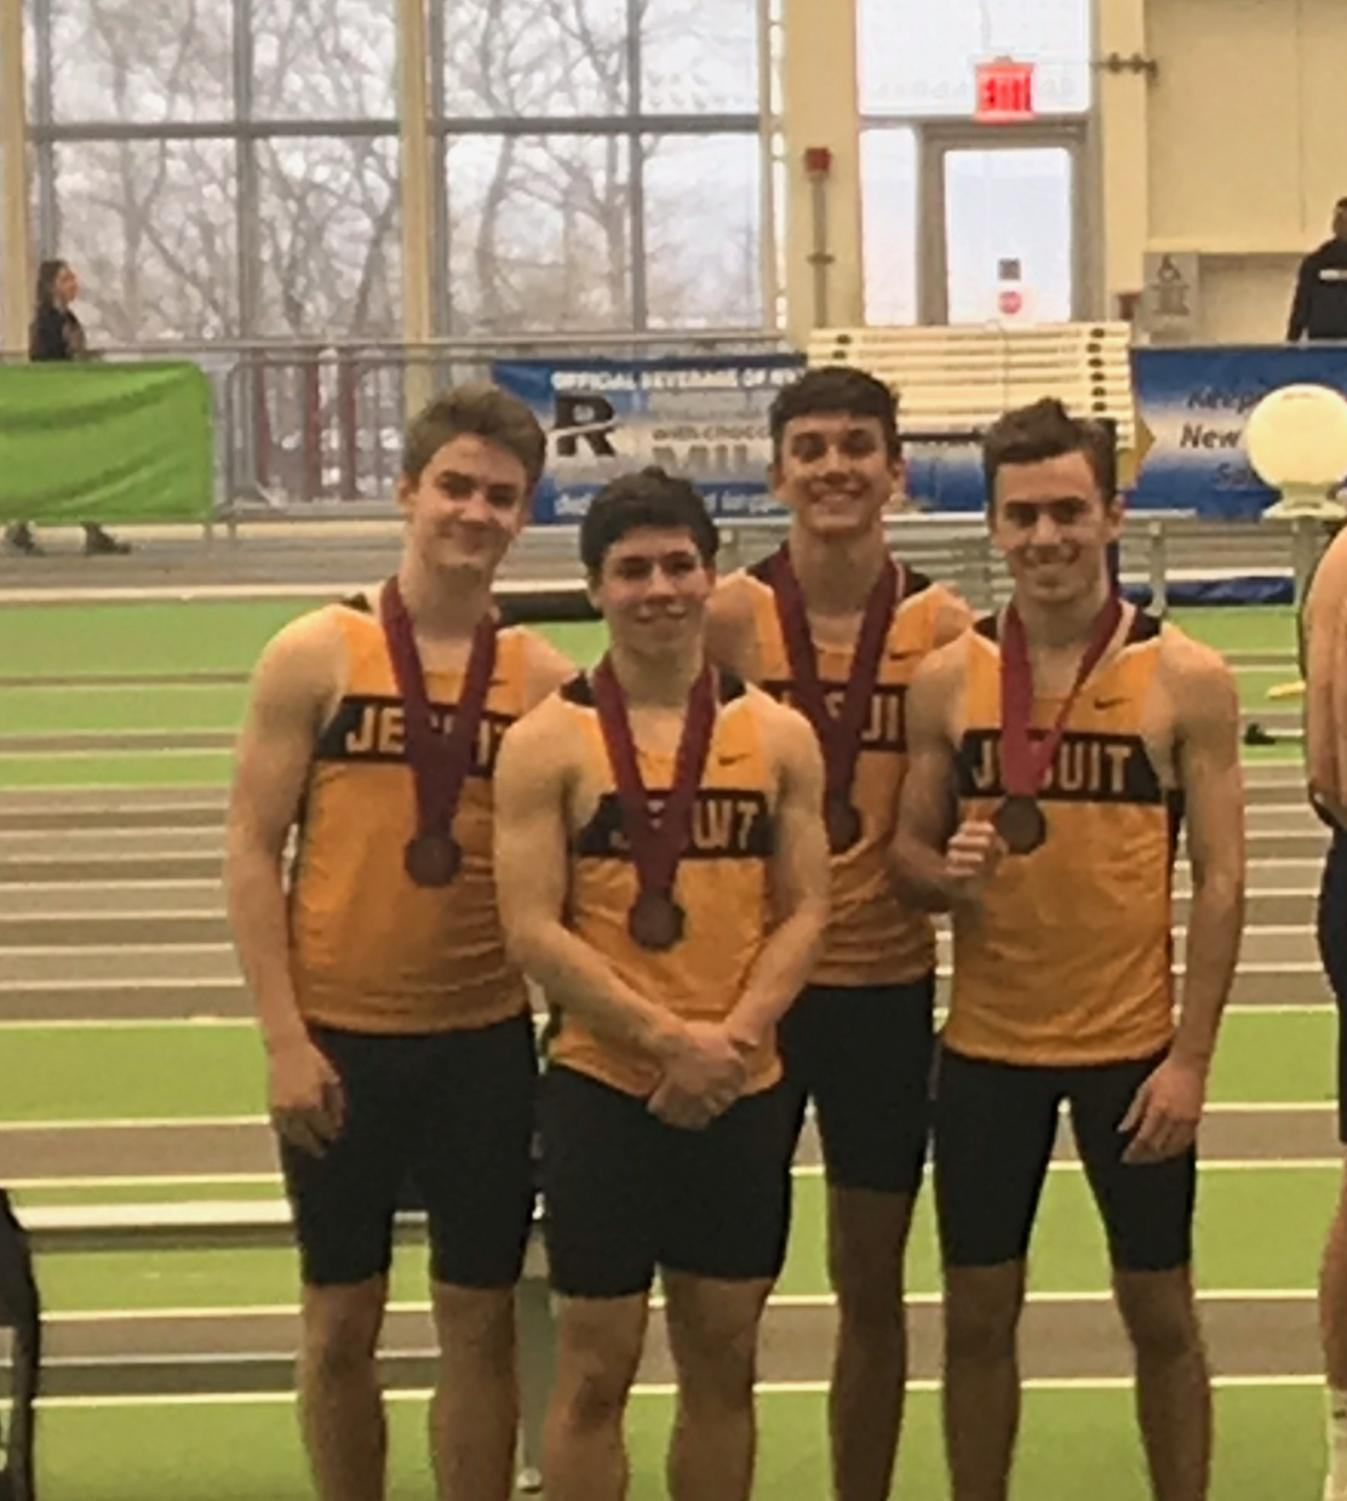 The 4x400 relay team poses with their medals after capturing 8th place at States. From left to right (Howlett, Passero, Perozzi, Ryder)